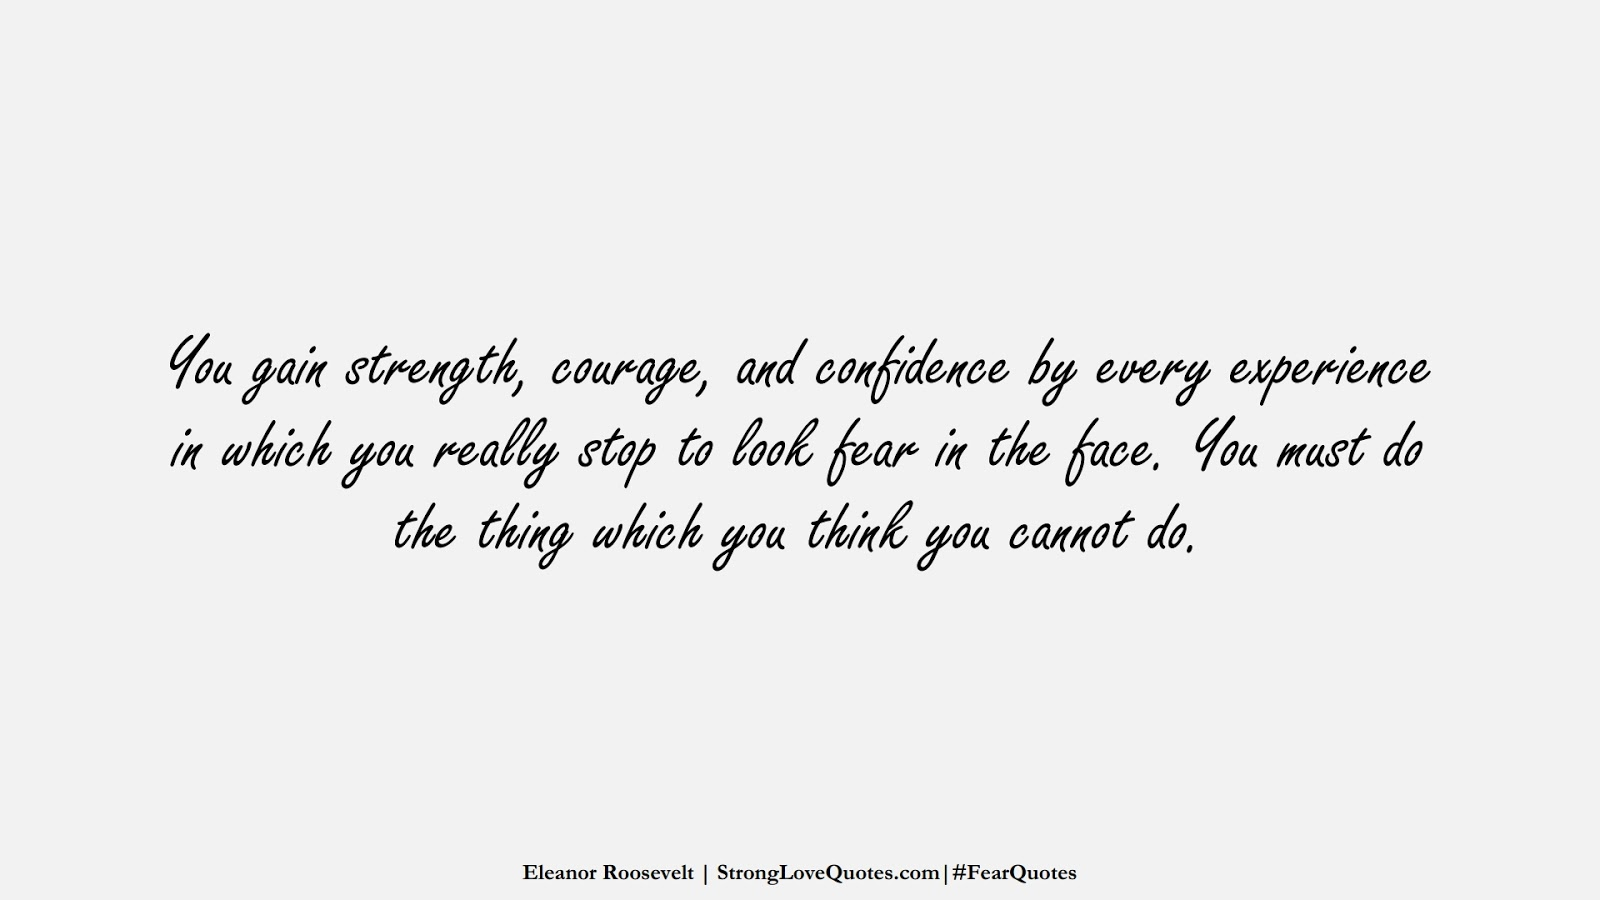 You gain strength, courage, and confidence by every experience in which you really stop to look fear in the face. You must do the thing which you think you cannot do. (Eleanor Roosevelt);  #FearQuotes